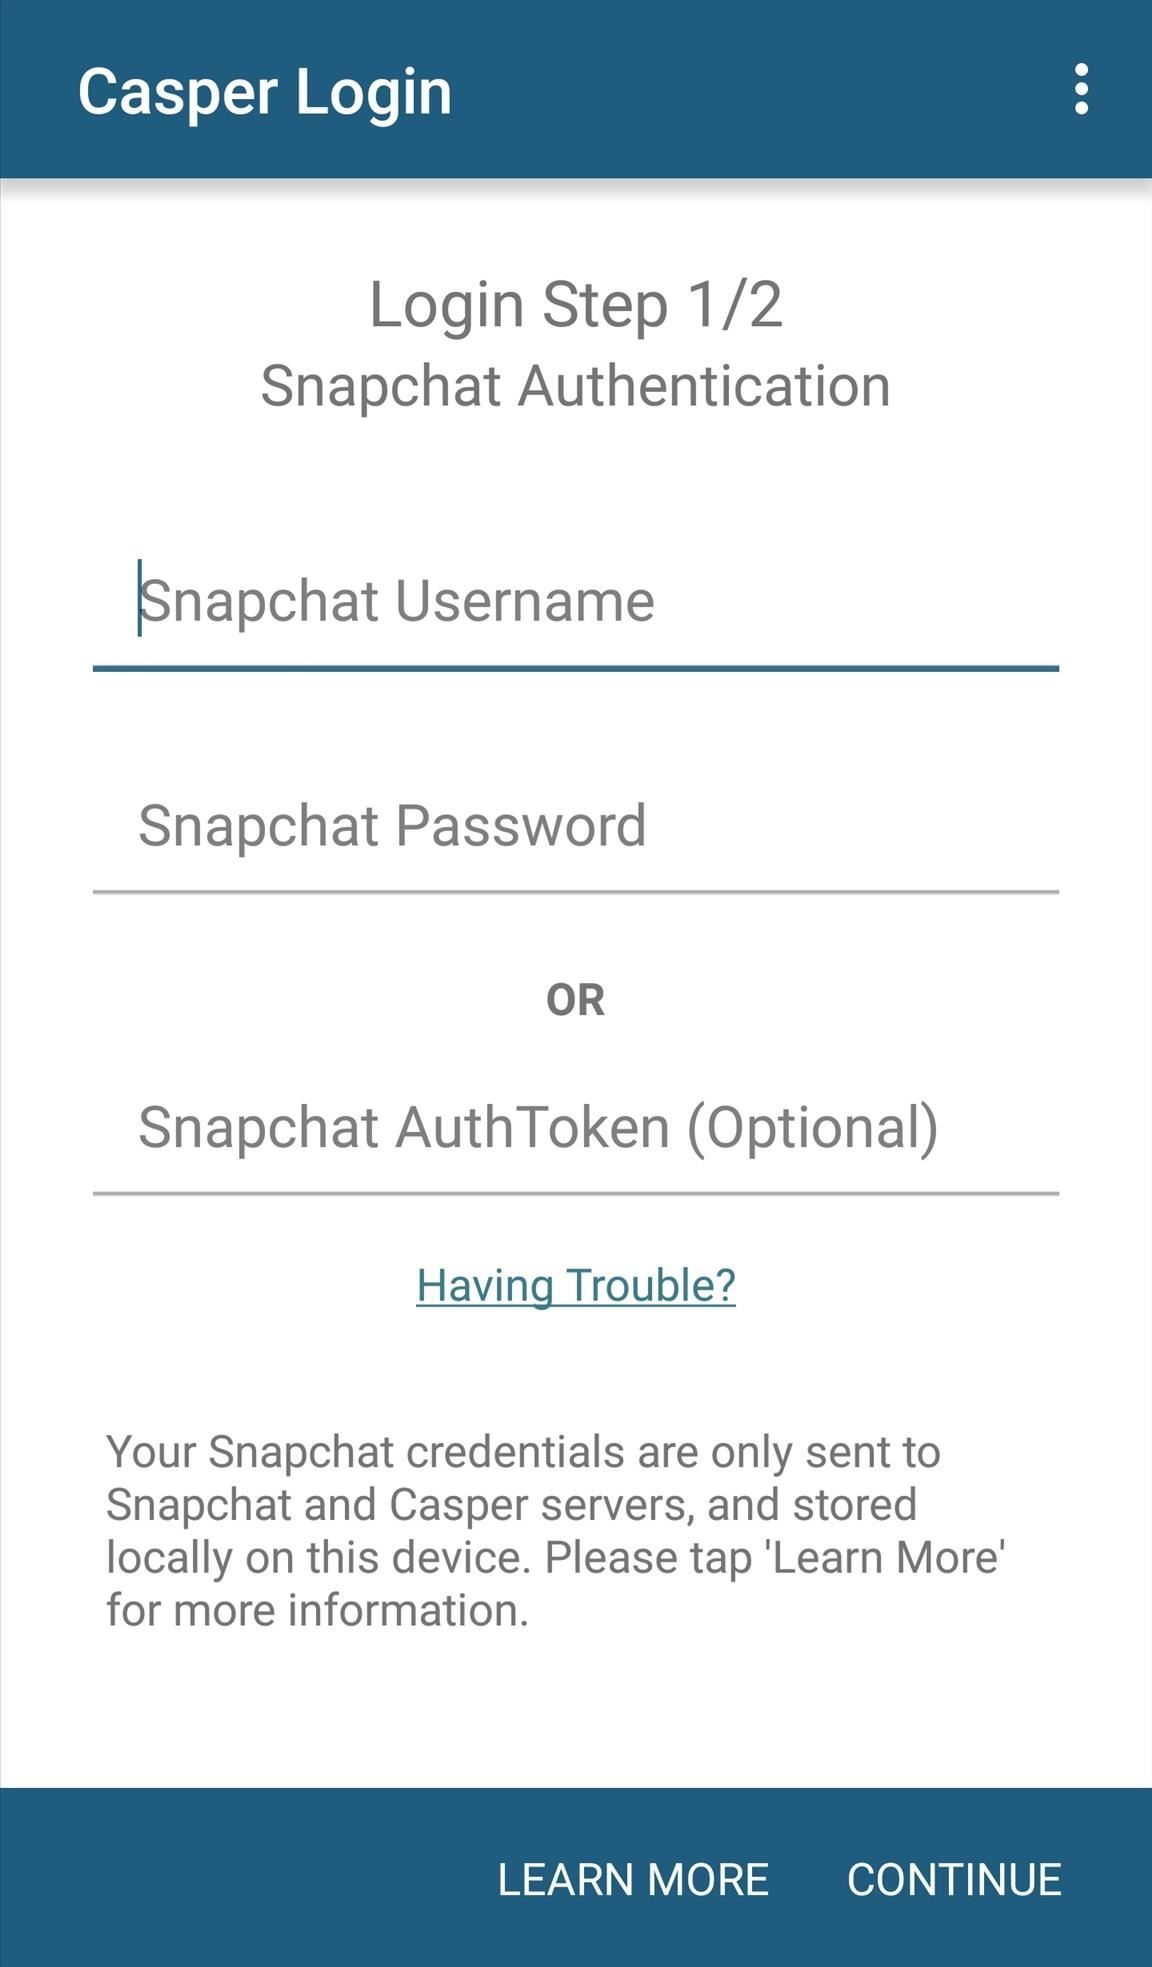 How to Save Snapchats on Android Undetected (No Root Needed)